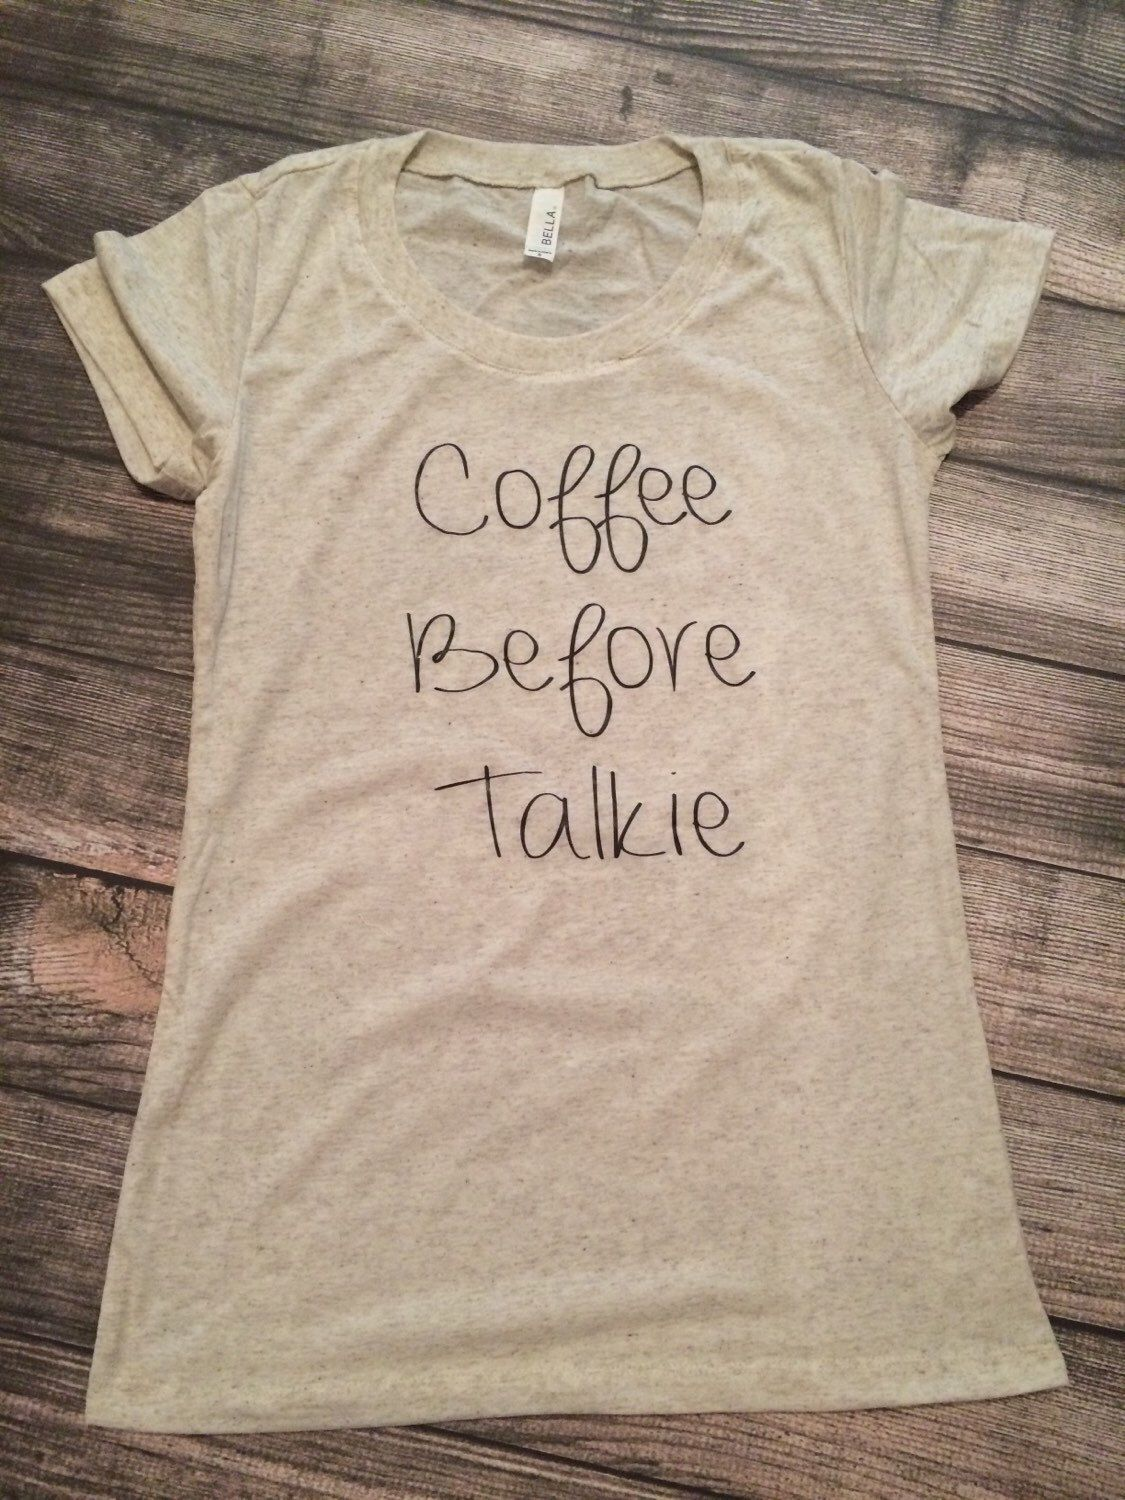 SALE - Coffee Before Talkie, women's tshirt, coffee shirt, morning coffee tshirt, womens clothes, women's shirts, coffee tee by Twelve20Designs on Etsy https://www.etsy.com/ca/listing/230281098/sale-coffee-before-talkie-womens-tshirt